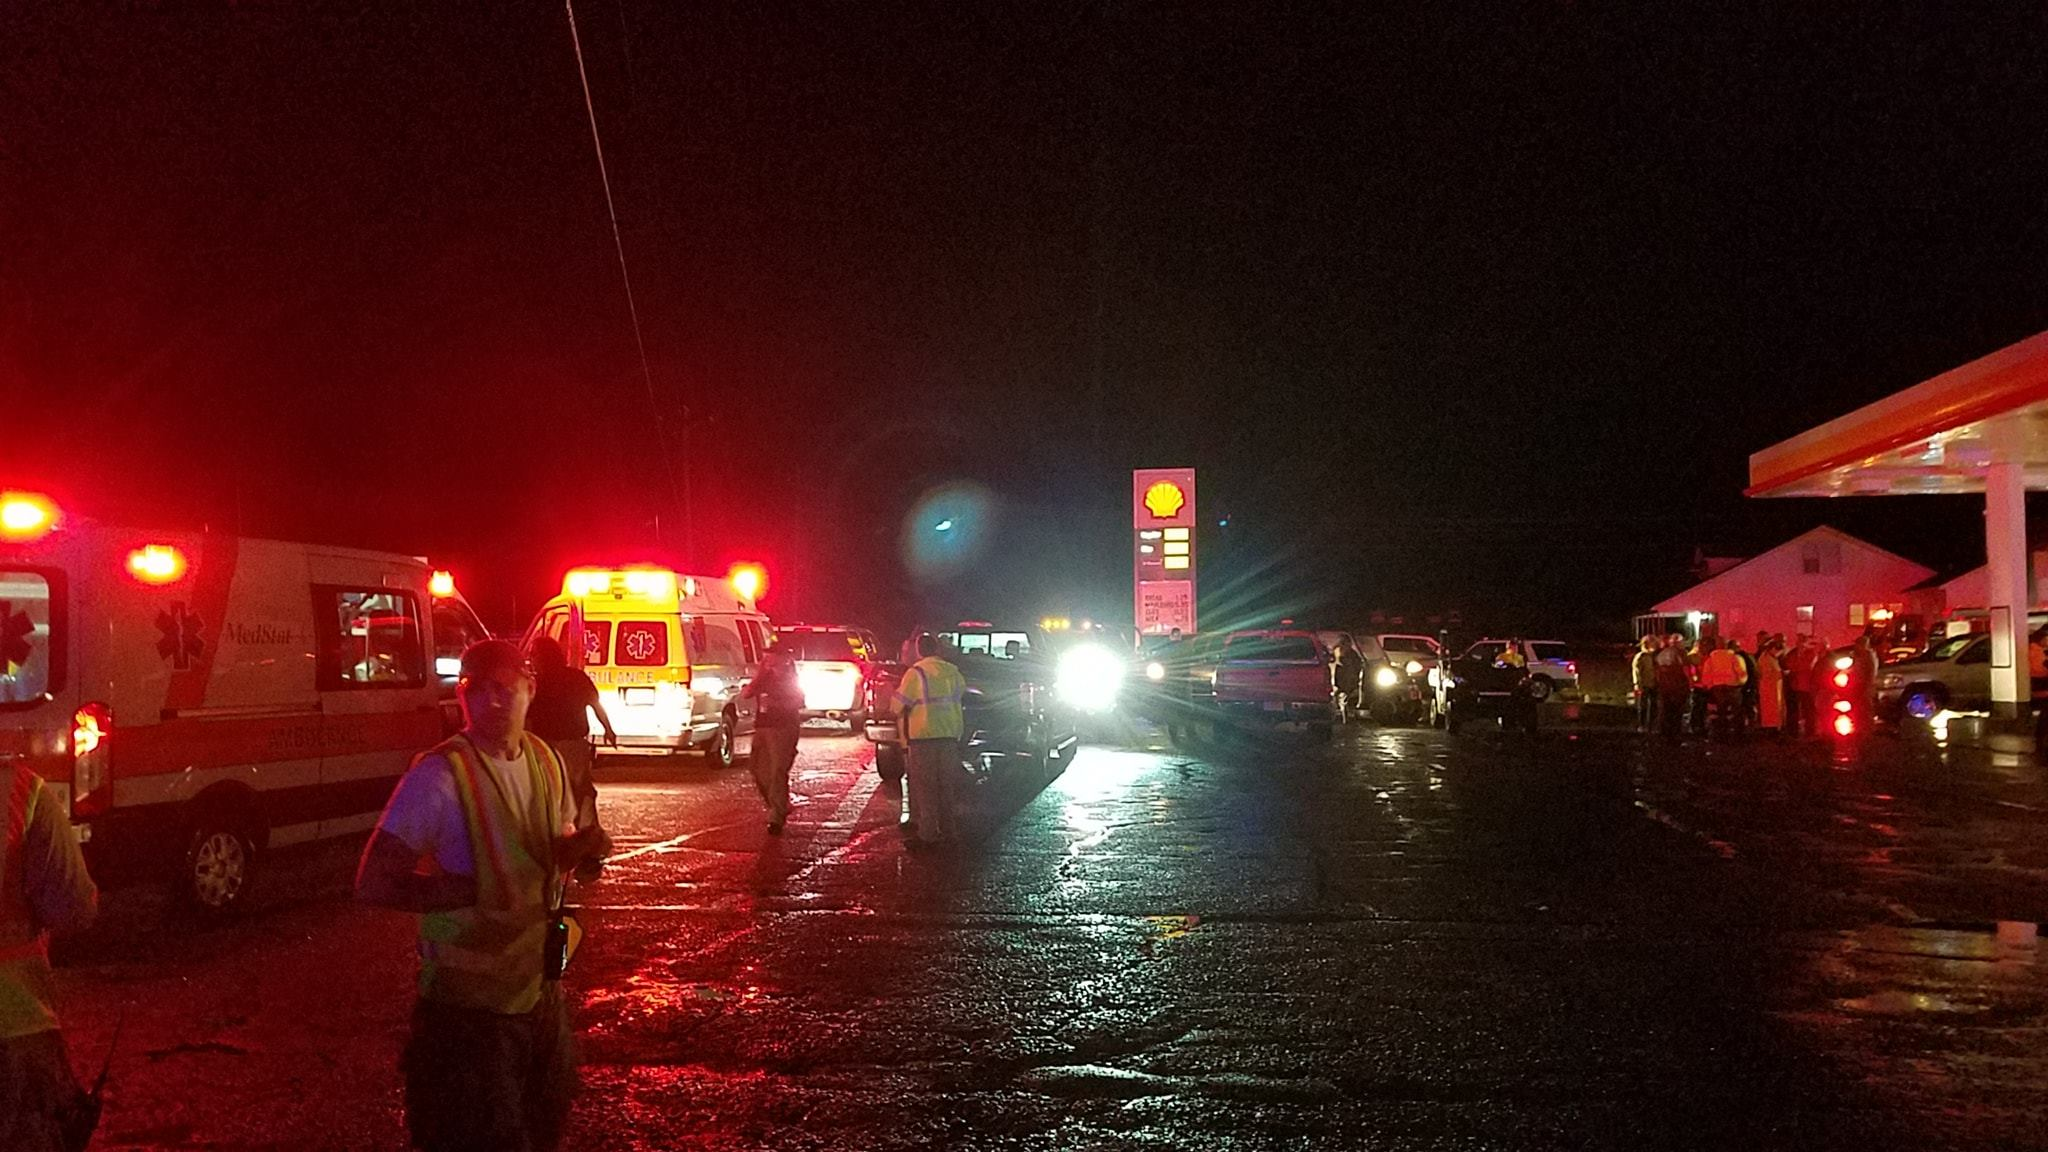 Update: Overnight severe weather claims 1 life in